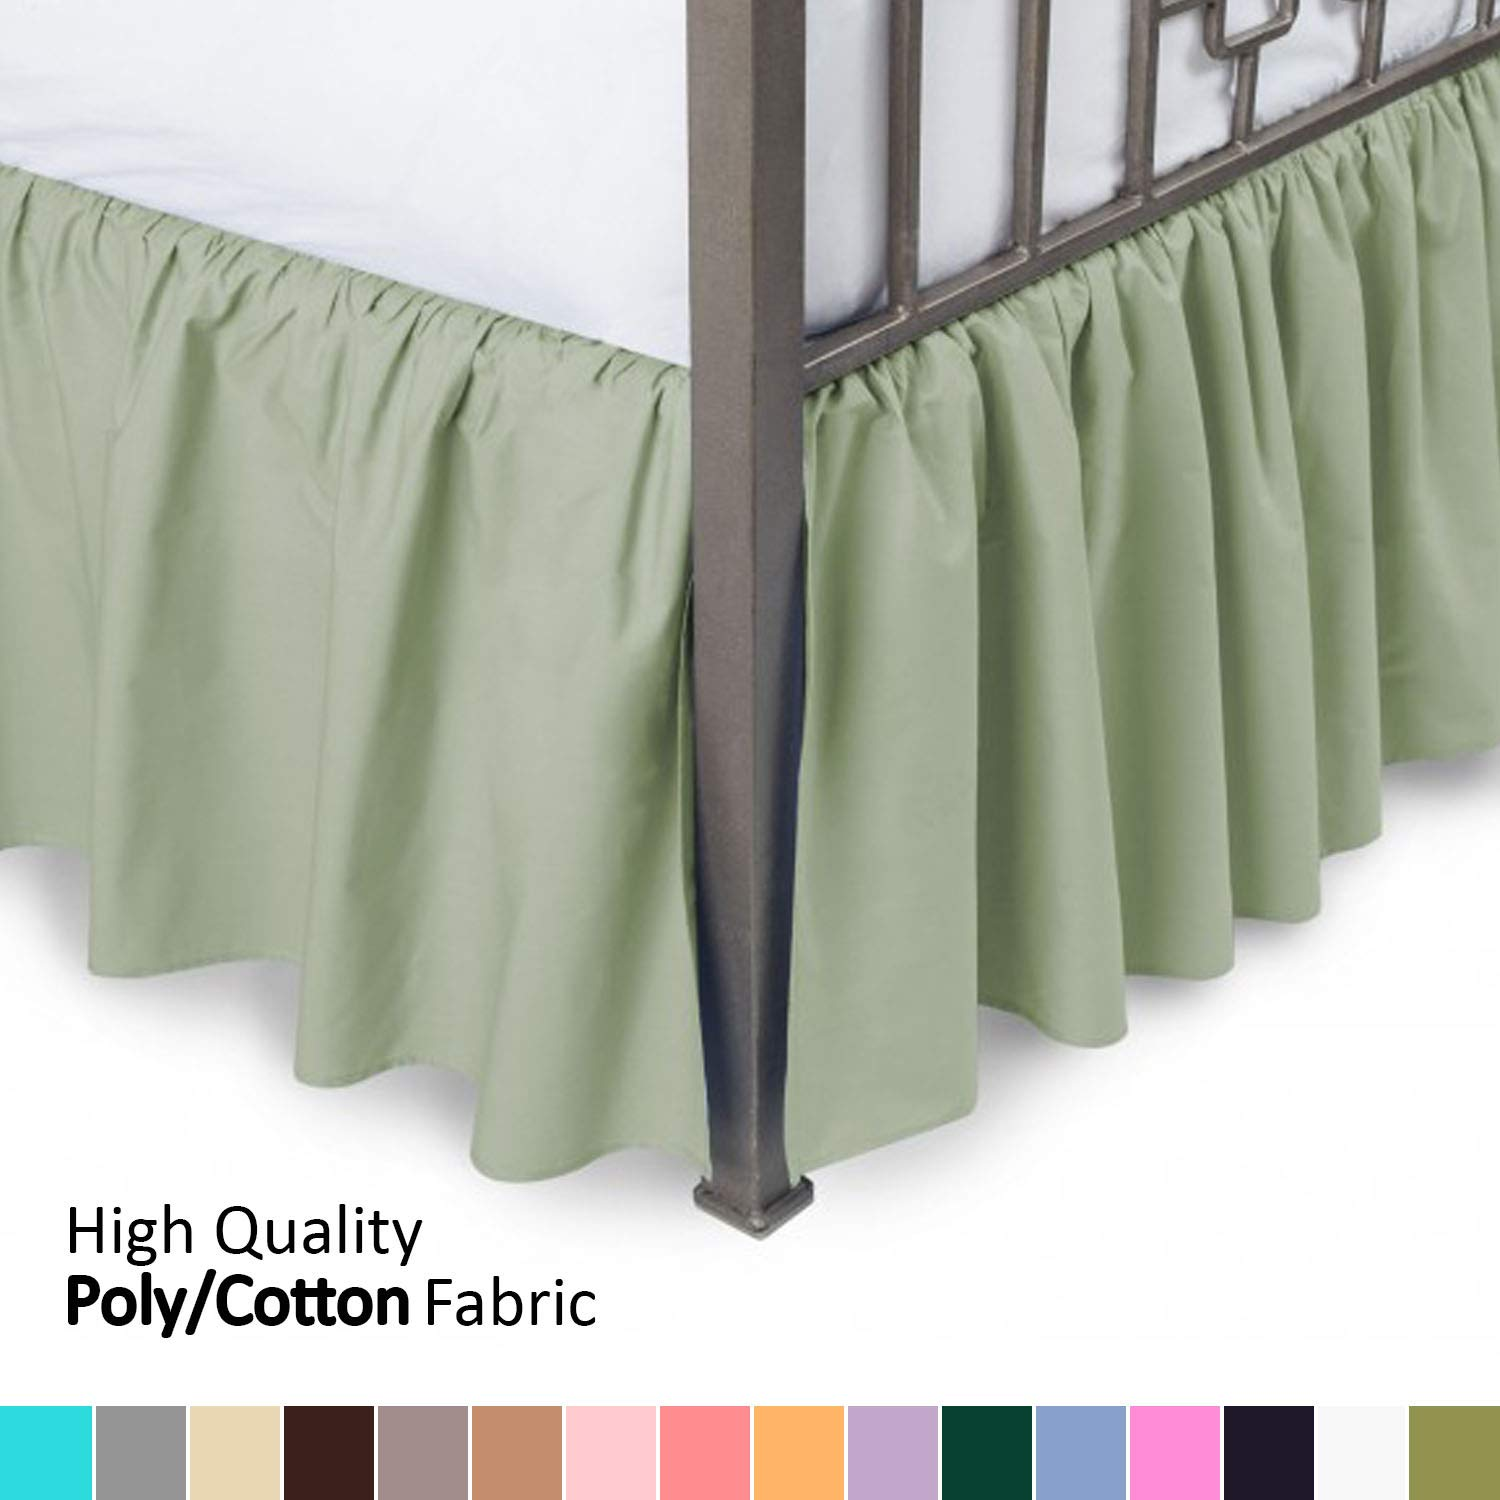 Ruffled Bed Skirt Wrinkle and Fade Resistant - 21 Inch Drop Bedskirt with Platform /… Available in All Bed Sizes and 16 Colors Twin XL, Camel